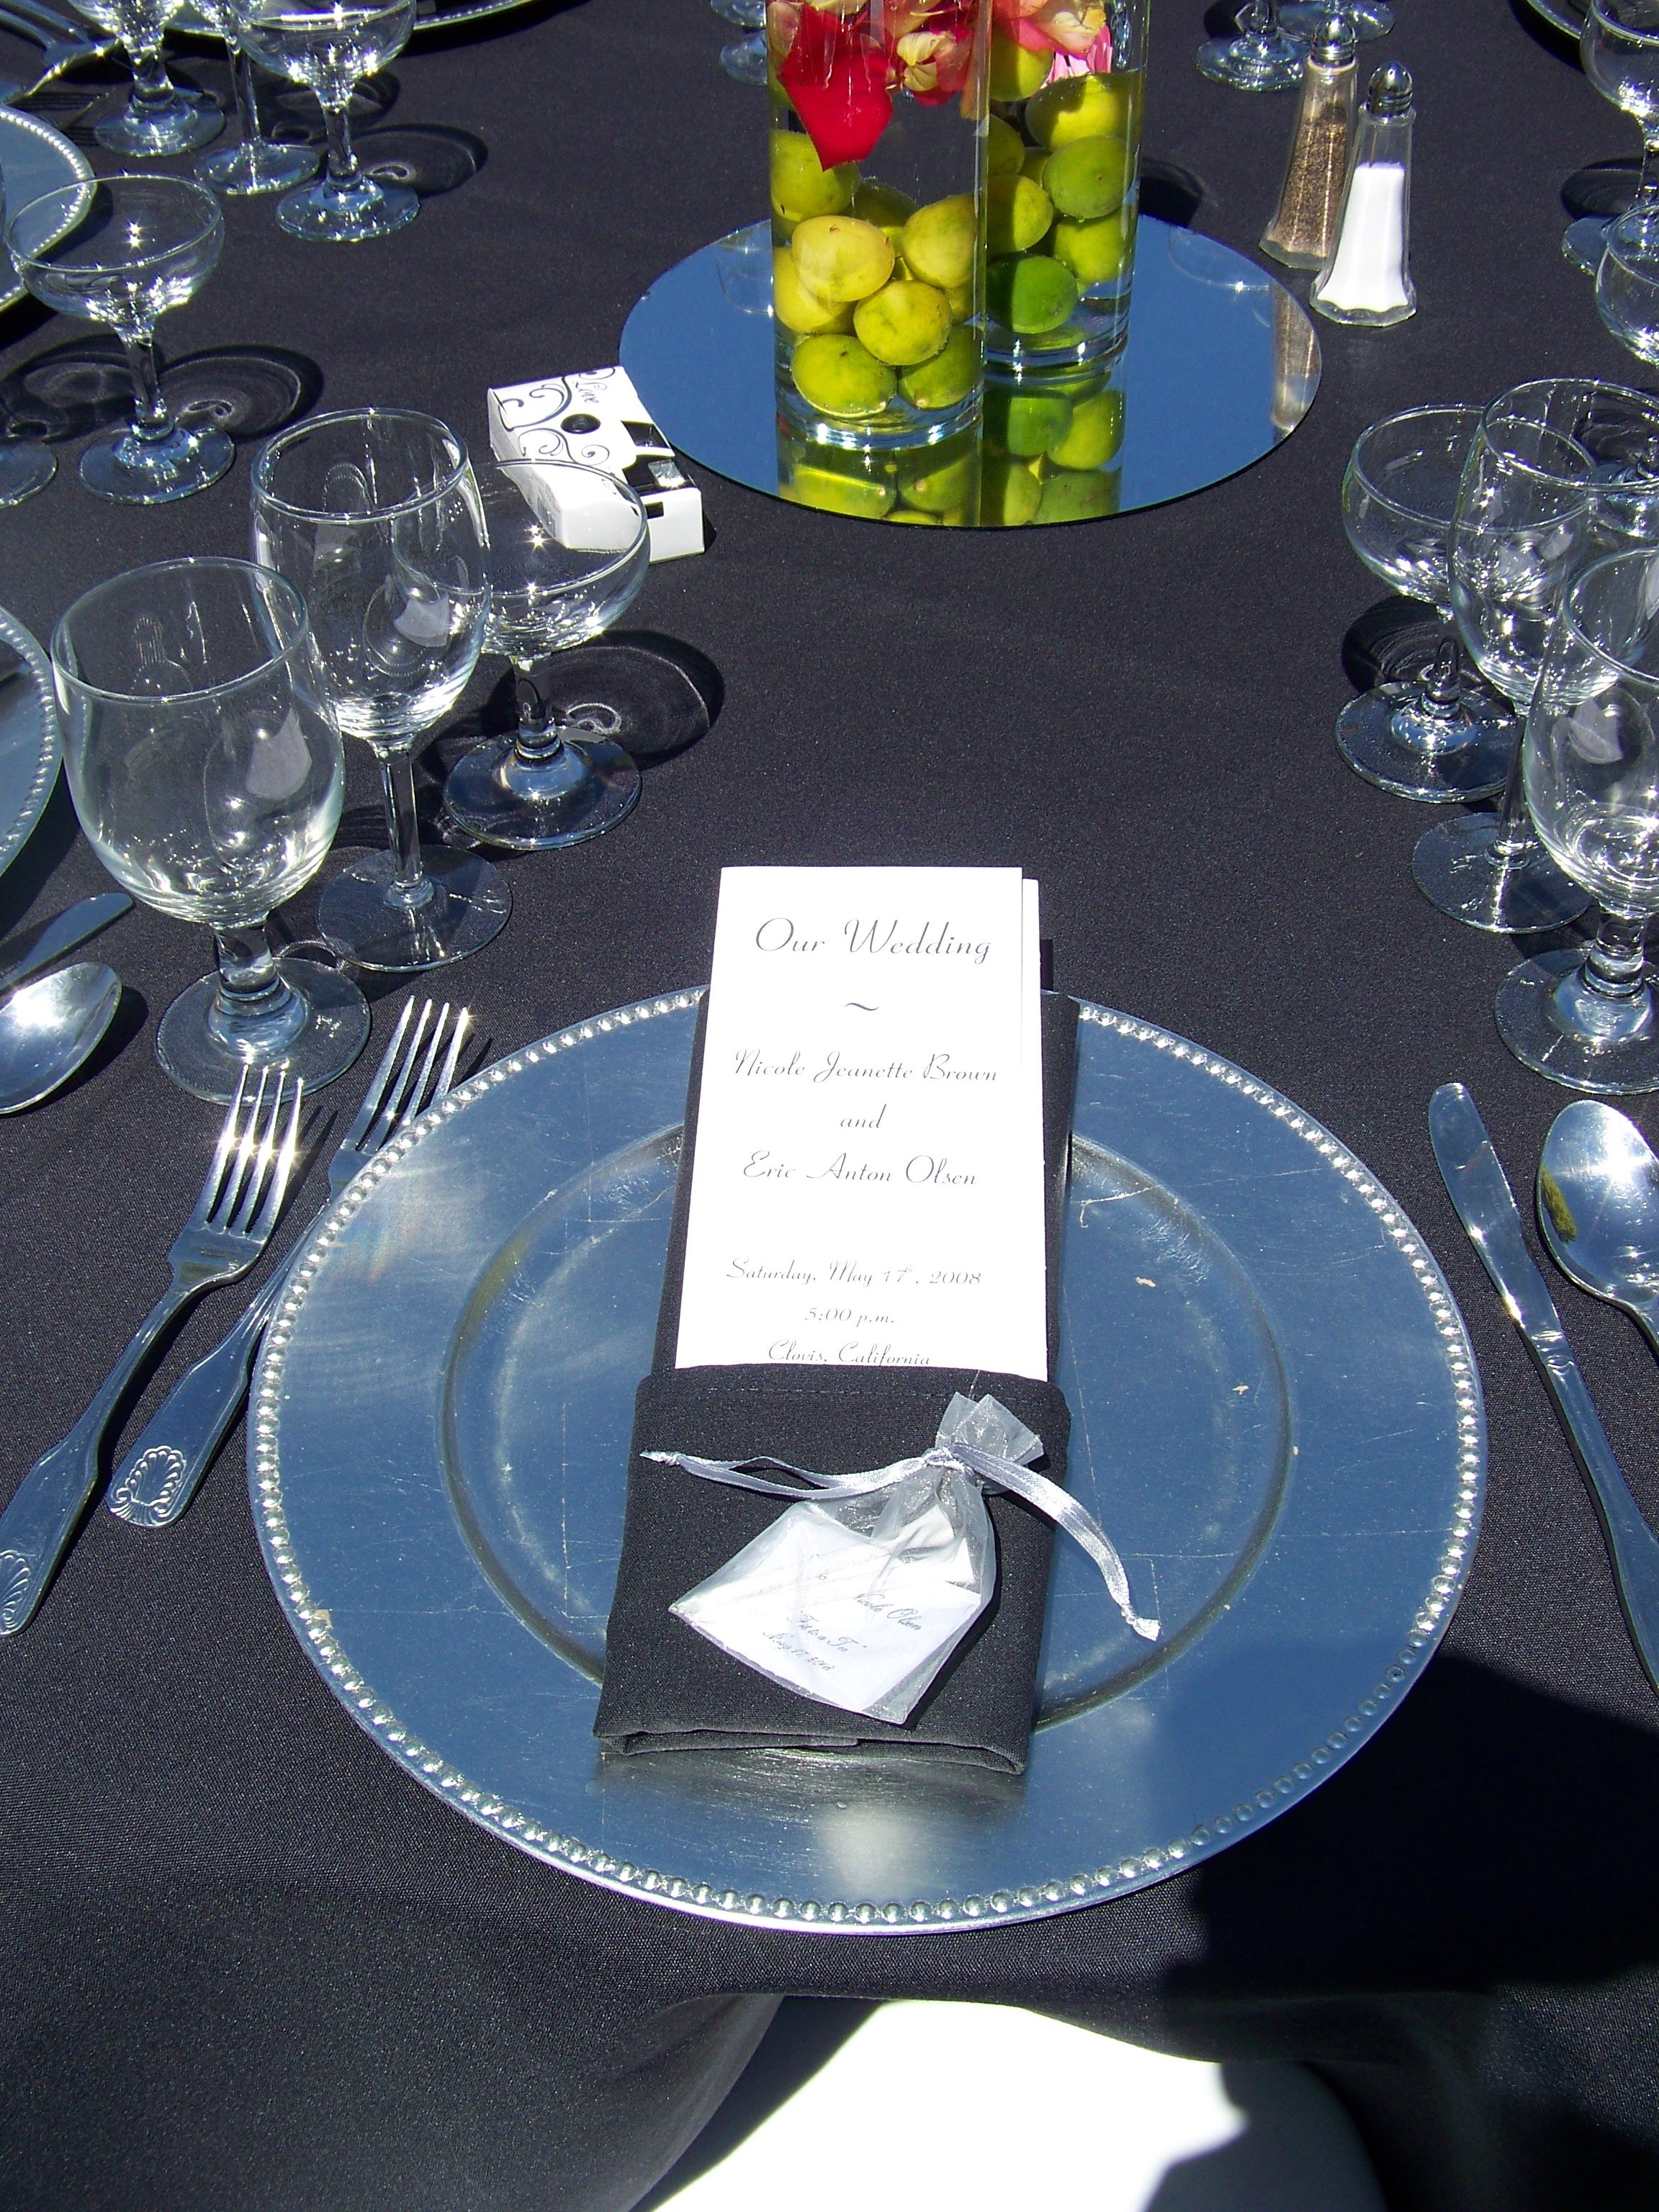 """Placesetting / Satin 120"""" Linens in Black / Crystal Stemware / Silver Chargers / Menu Cards tucked into Custom Folded Black Napkins / Wedding Favor on Menu Card / Fruit Filled Centerpieces w/ Floral on top of a Circle Mirror"""